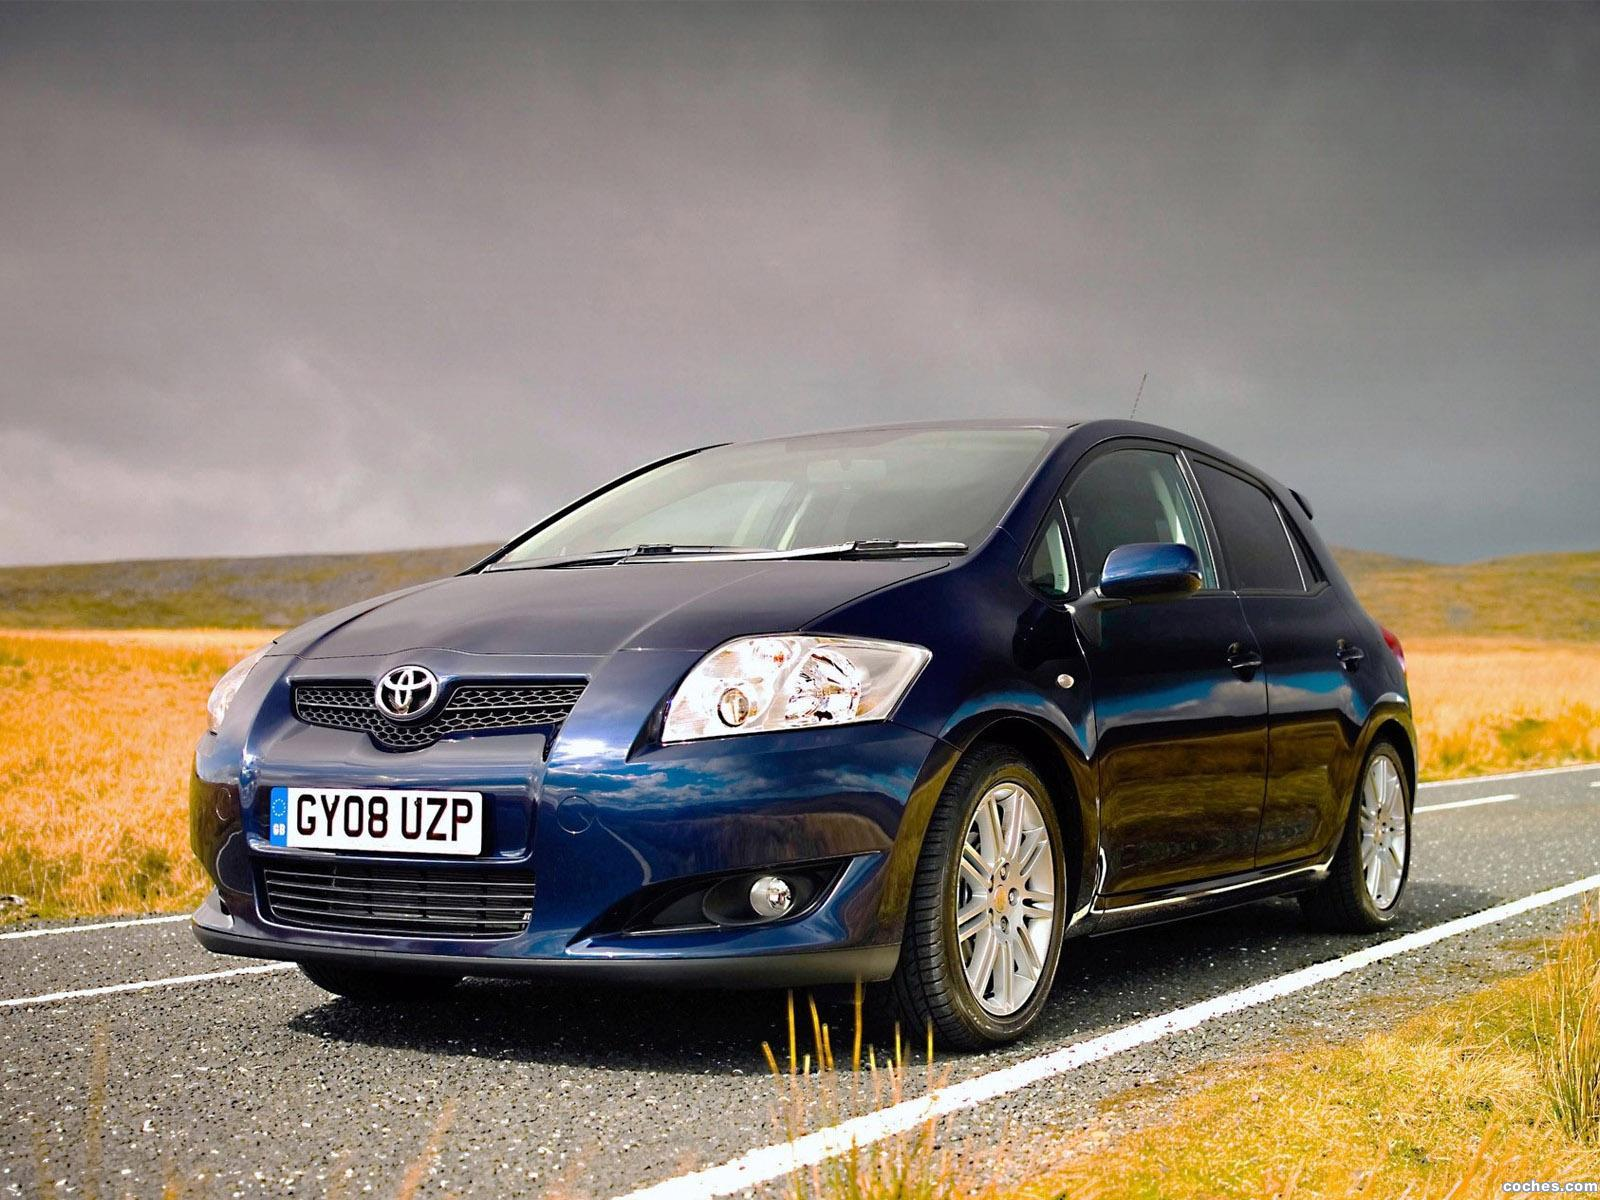 toyota_auris-sr-5-door-uk-2008_r4